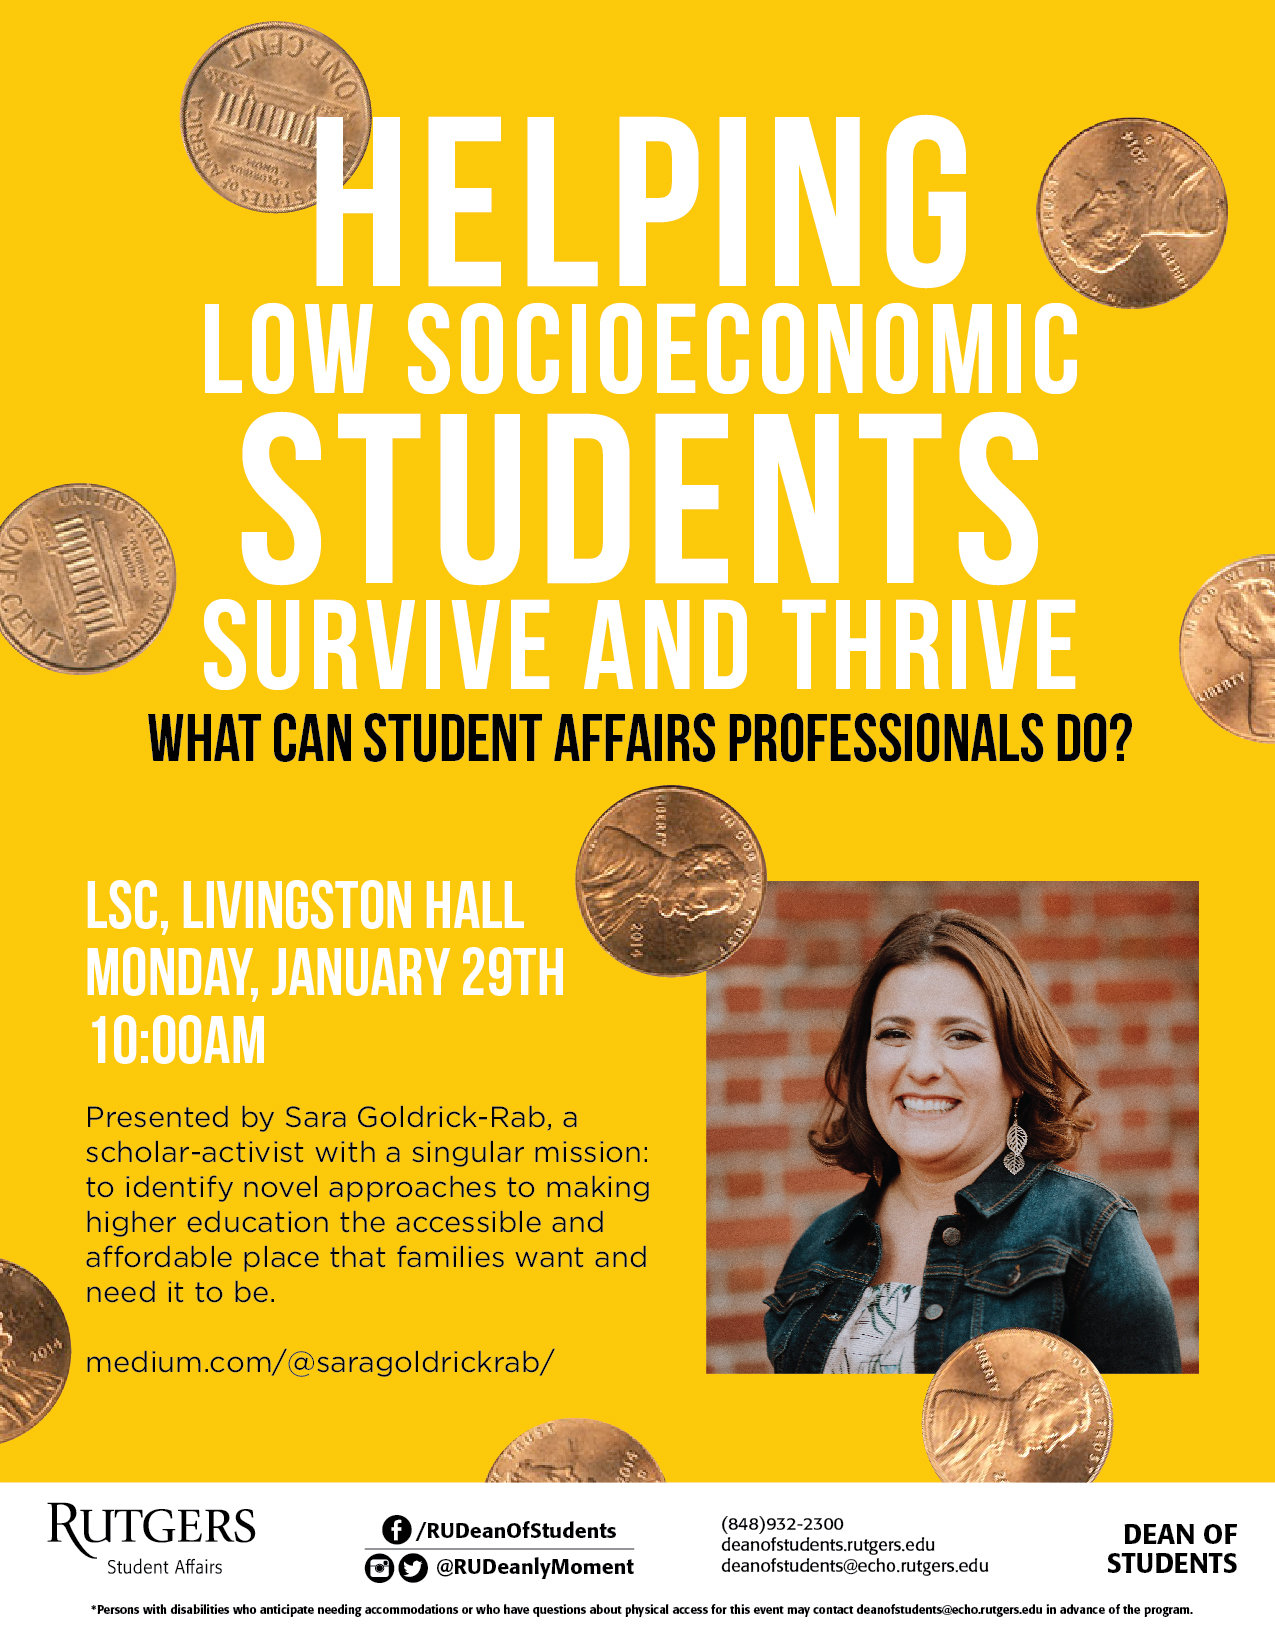 Helping Low Socioeconomic Students Survive and Thrive